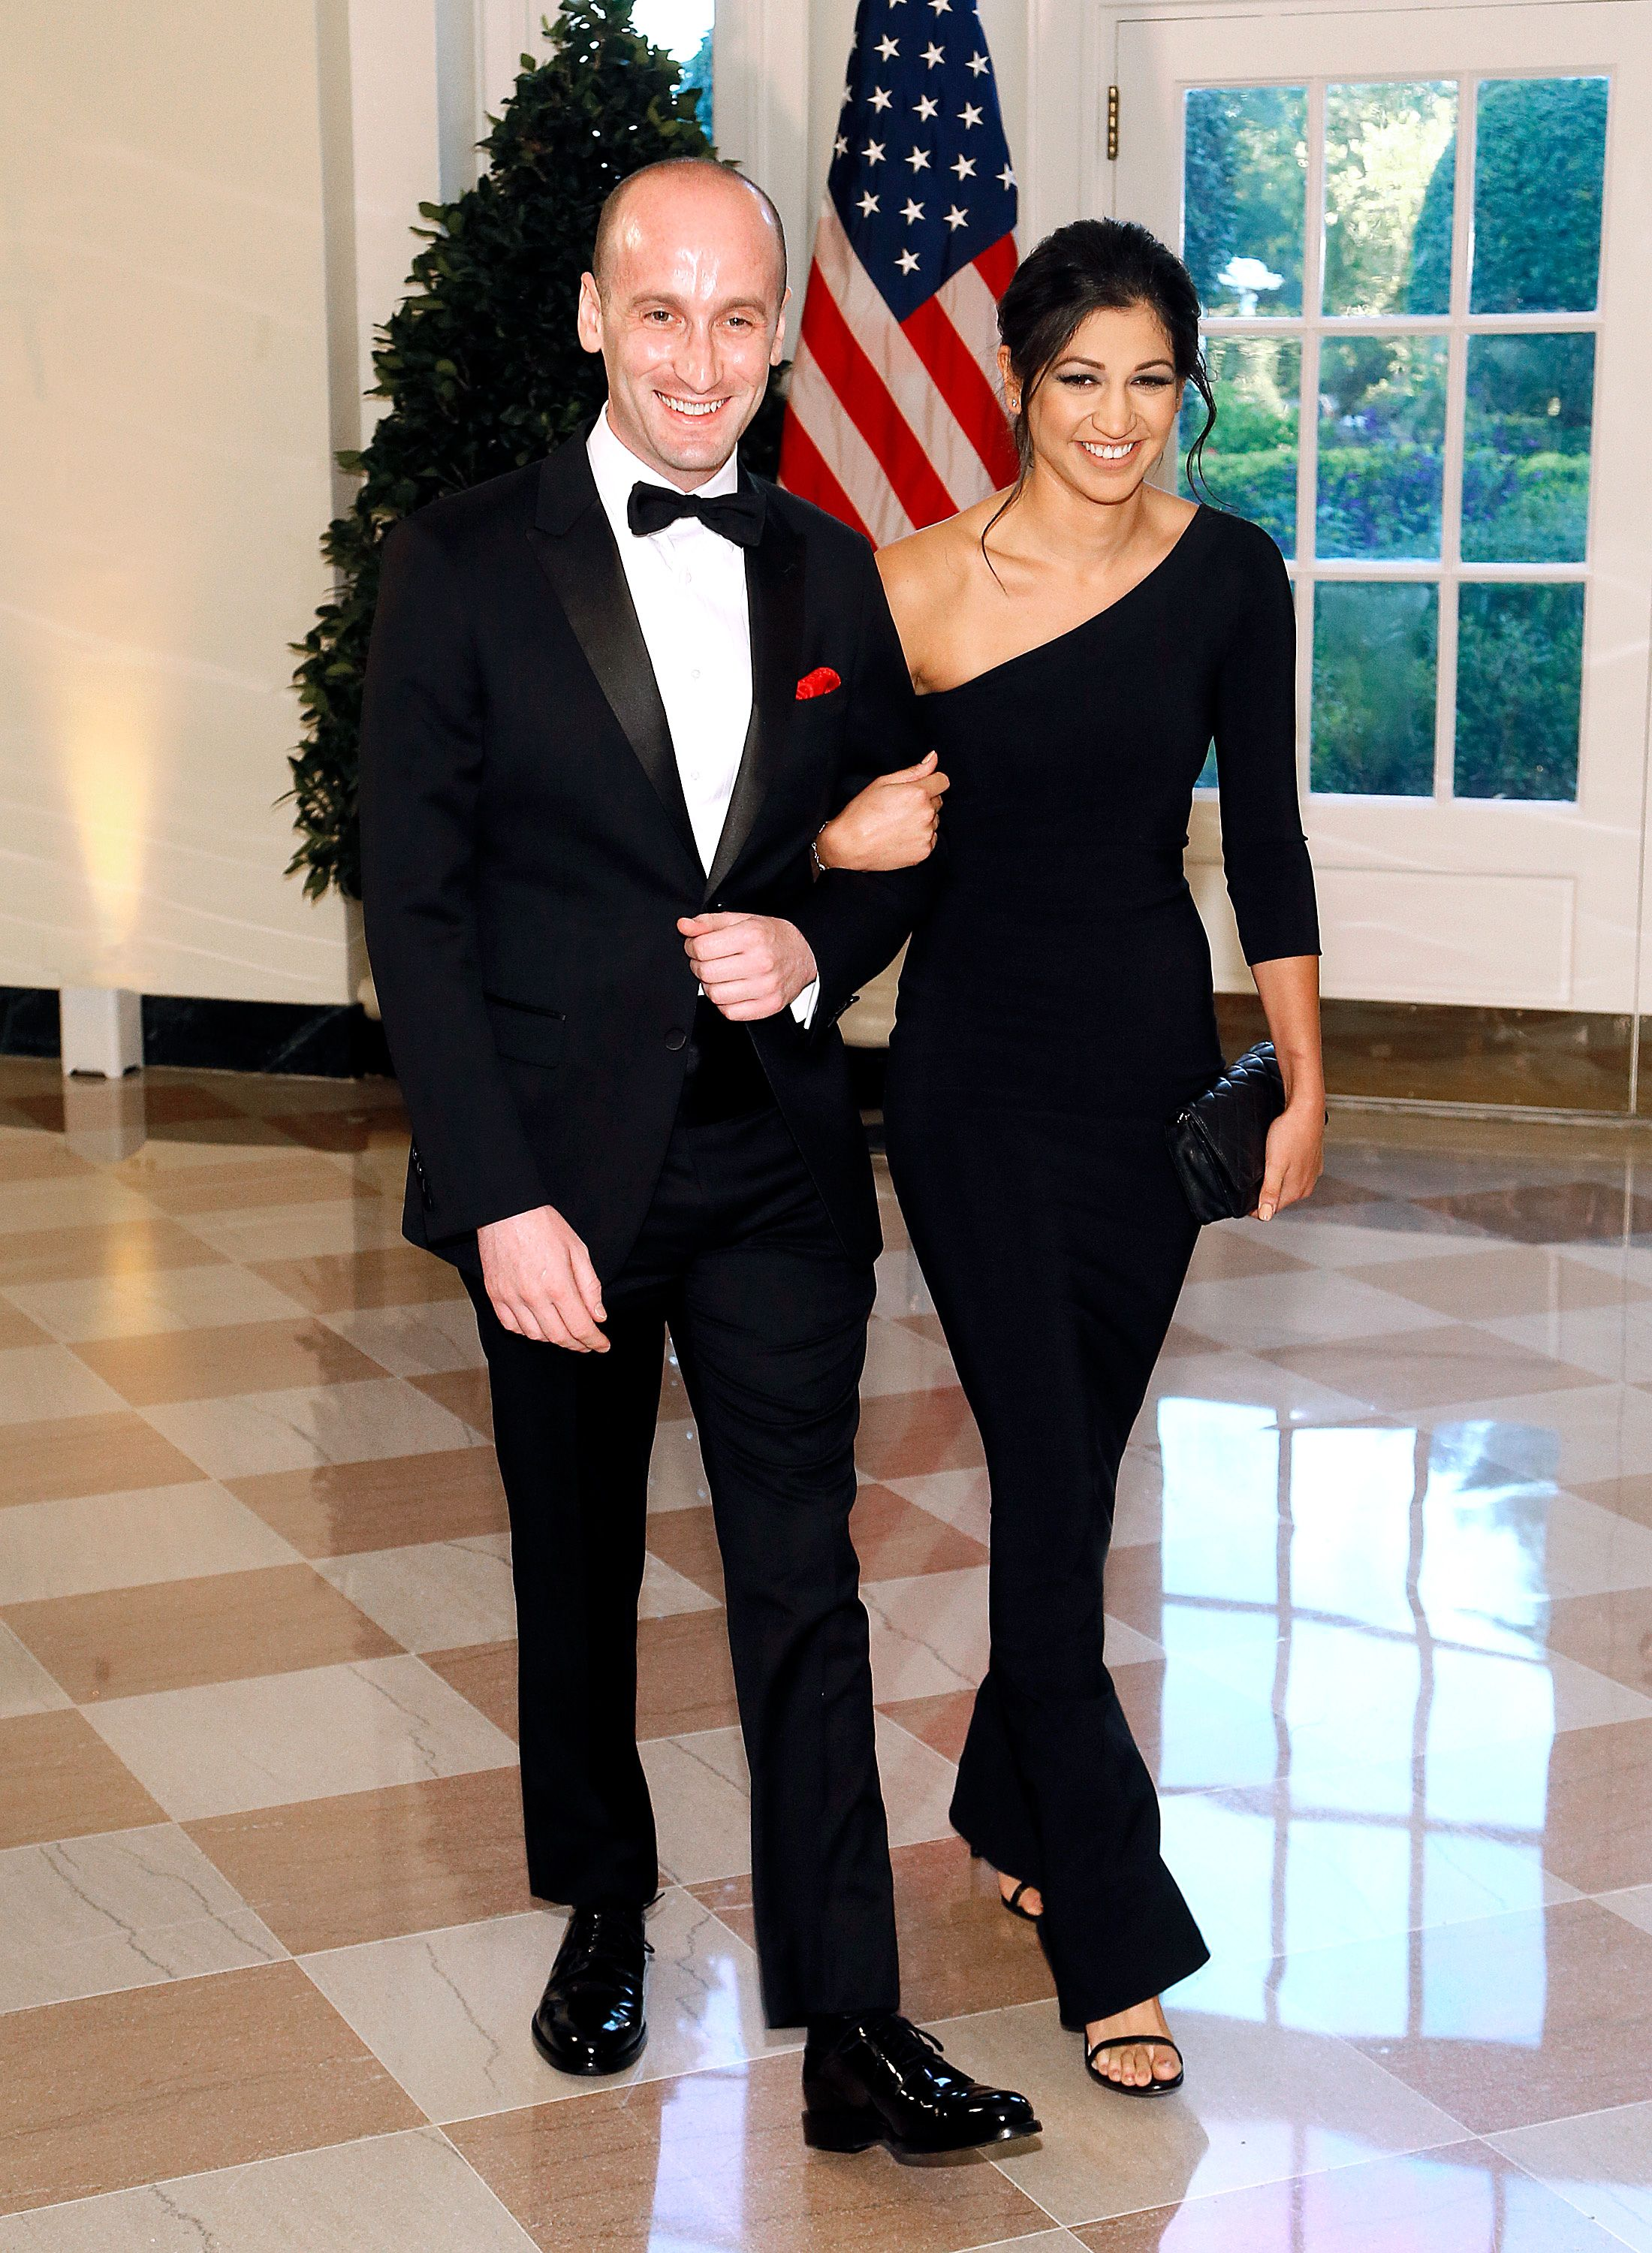 Katie Waldman Is Mike Pence S Press Secretary And Stephen Miller S Wife